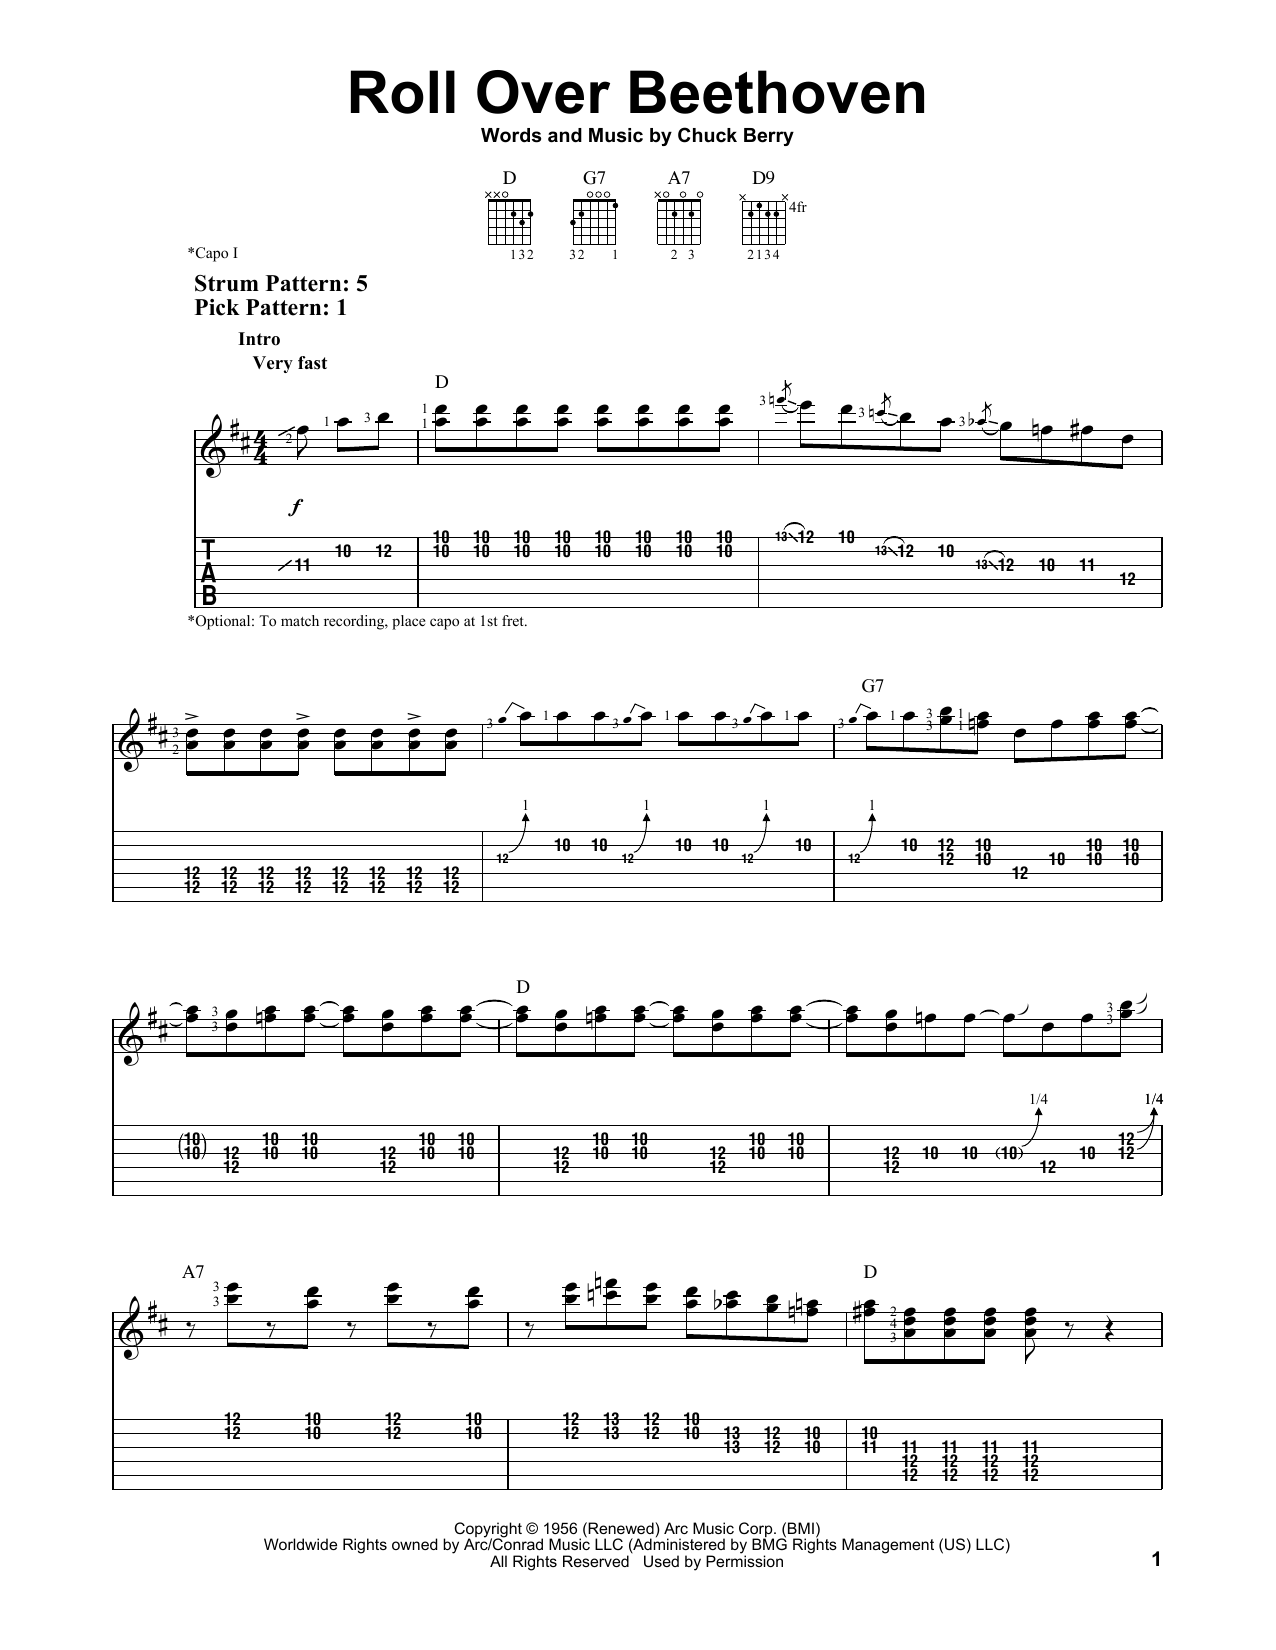 Roll Over Beethoven by Chuck Berry - Easy Guitar Tab